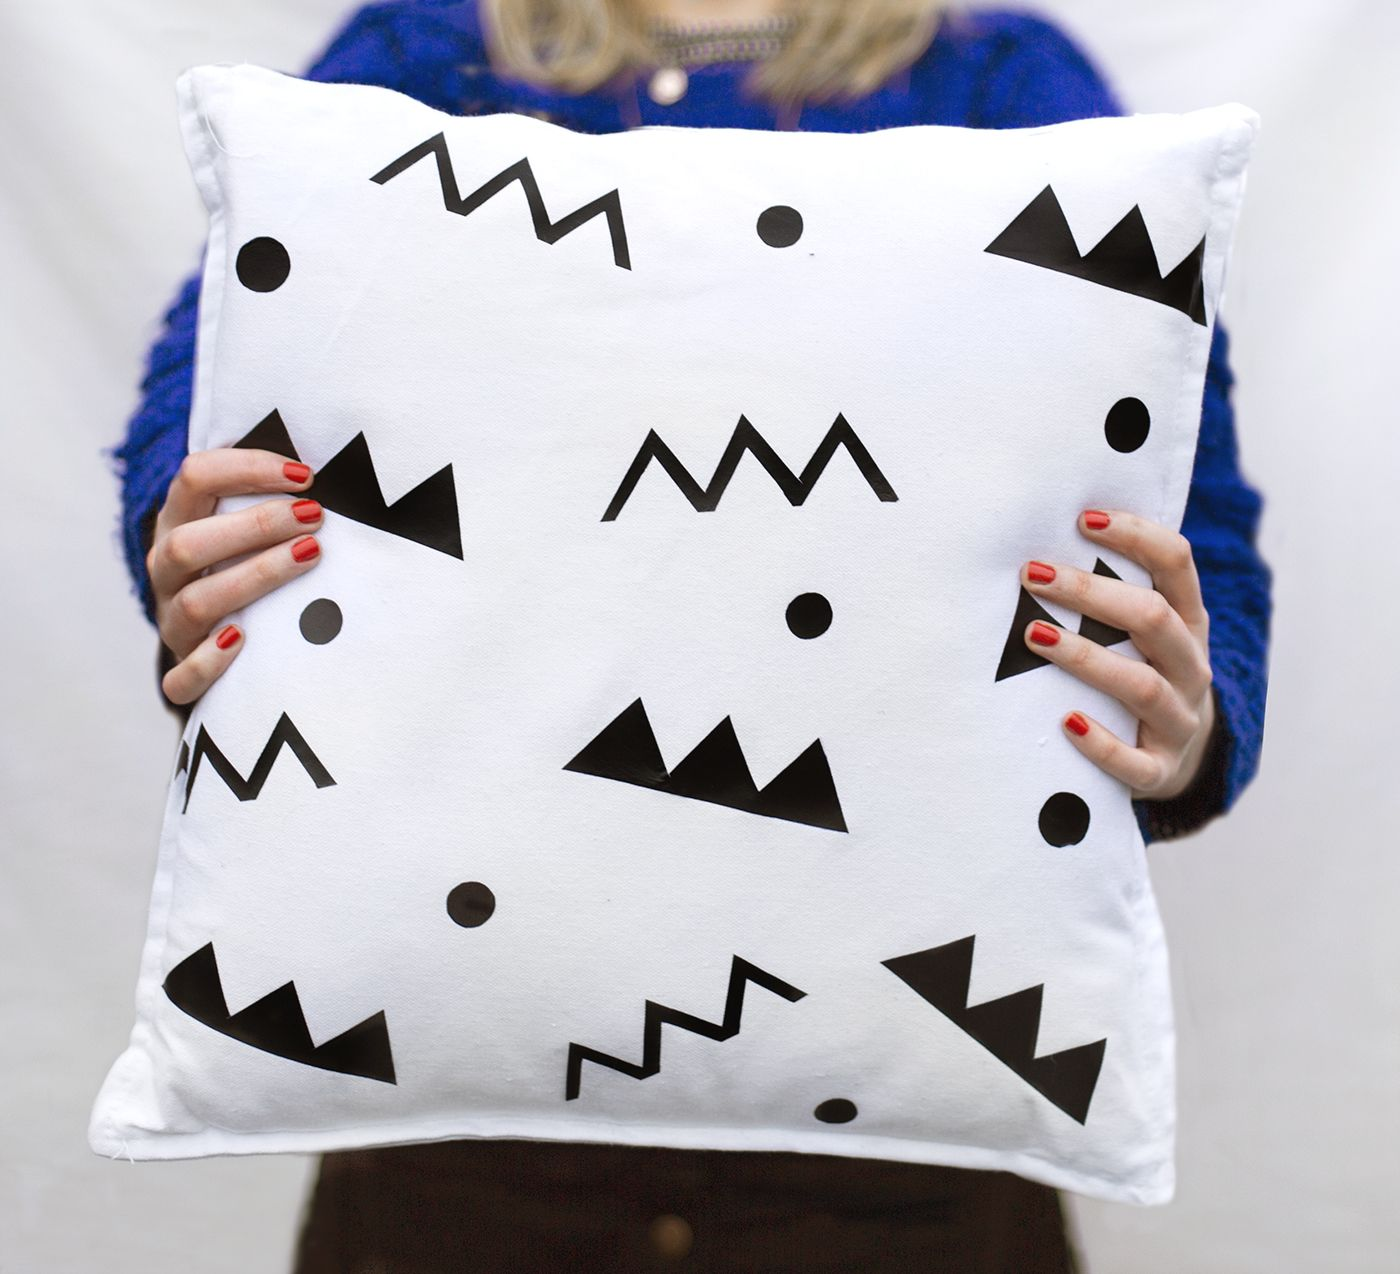 Pin by mishti bansal on pillows pinterest easy patterns and diy